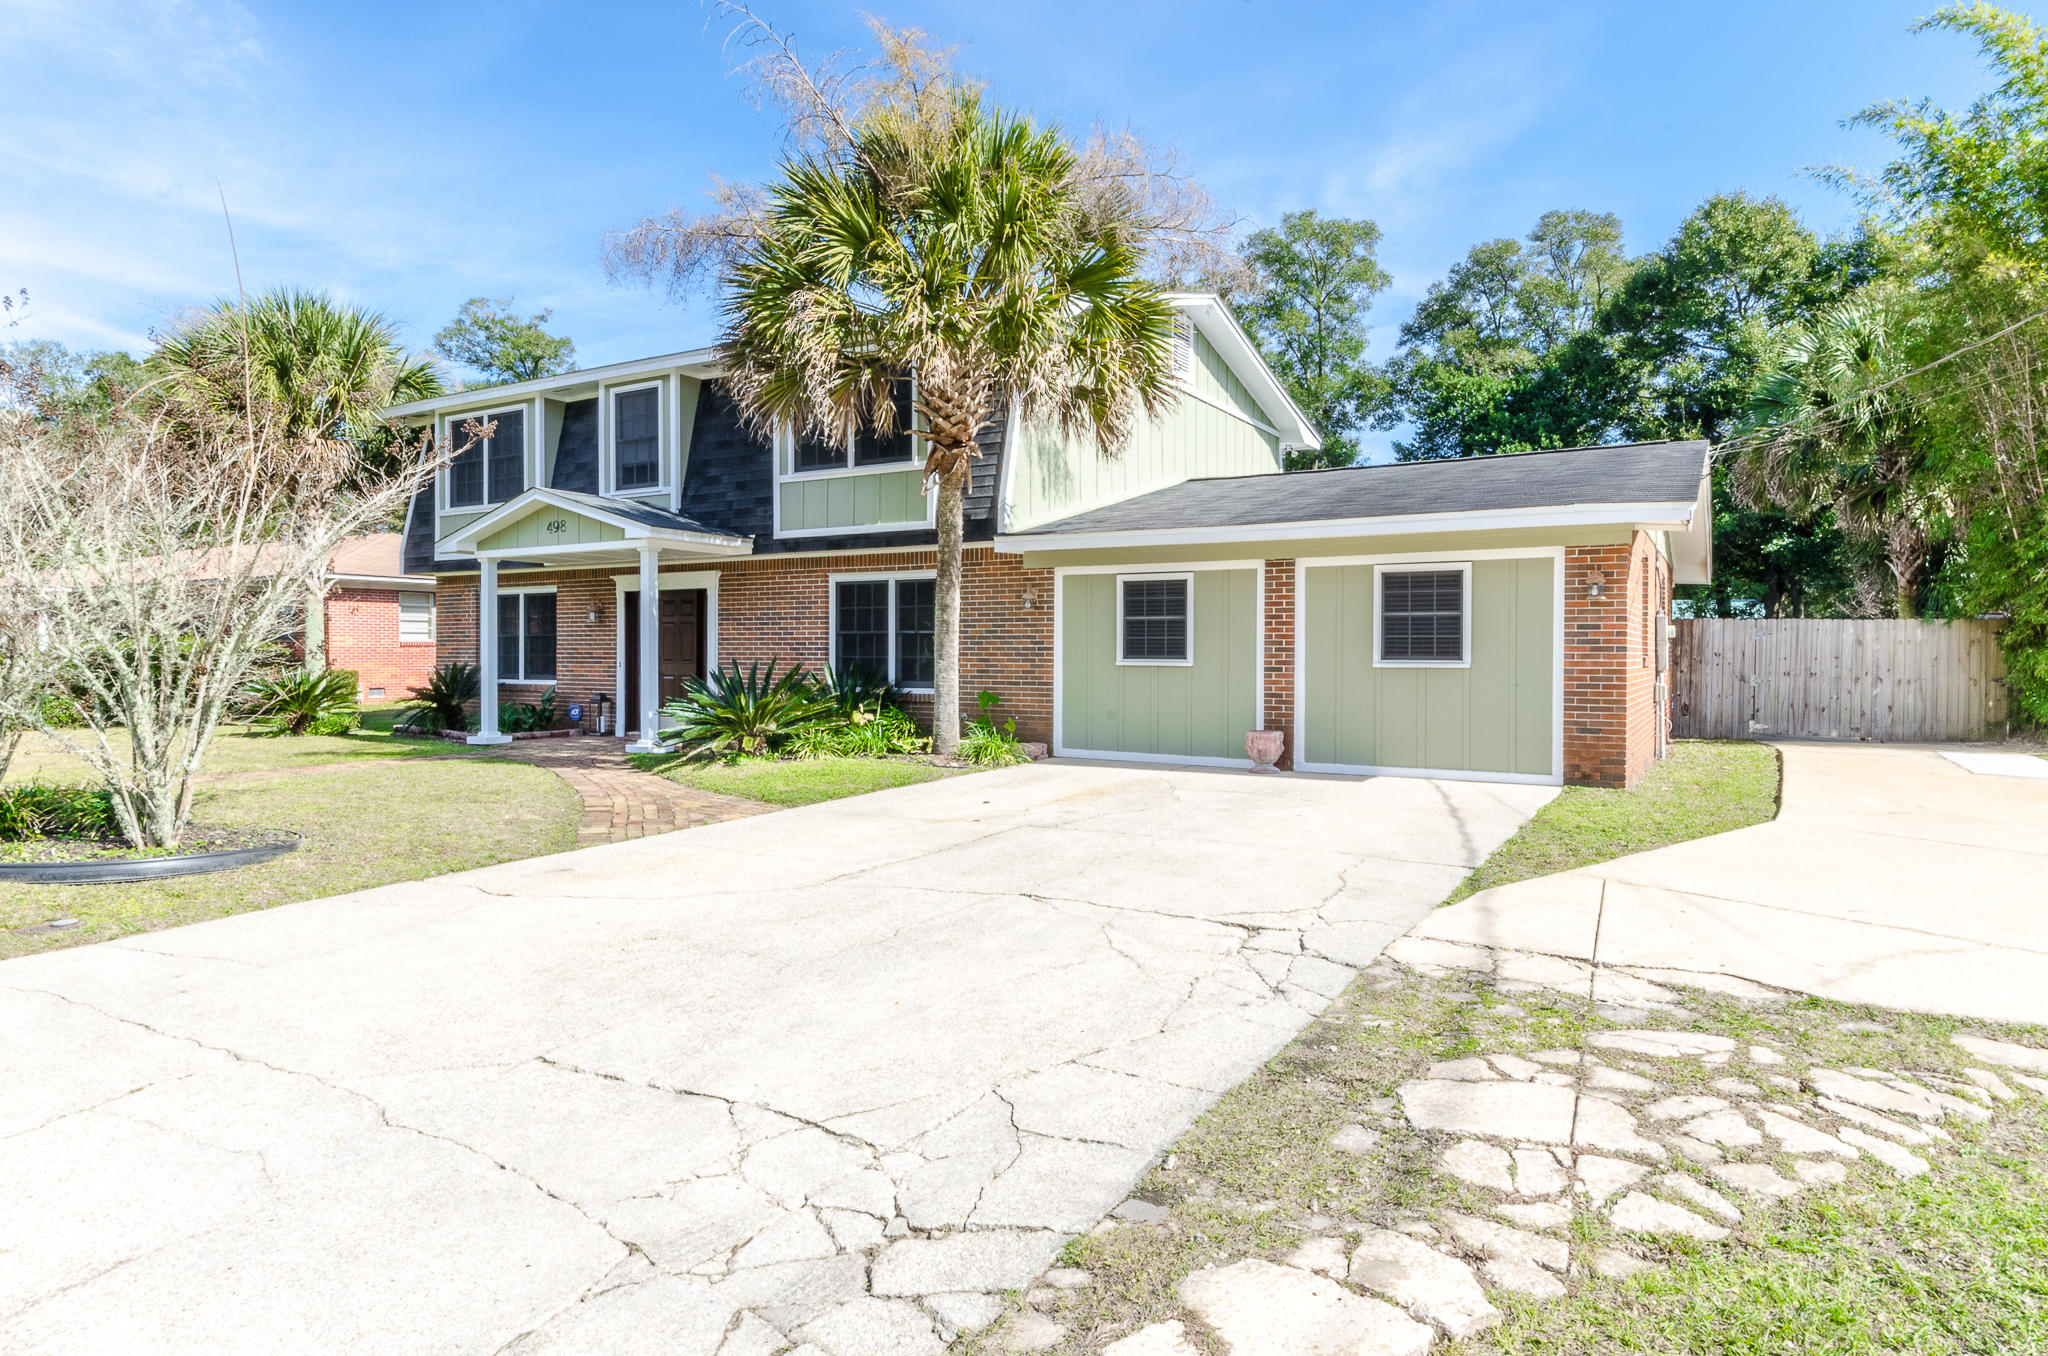 Photo of home for sale at 498 71st, Pensacola FL